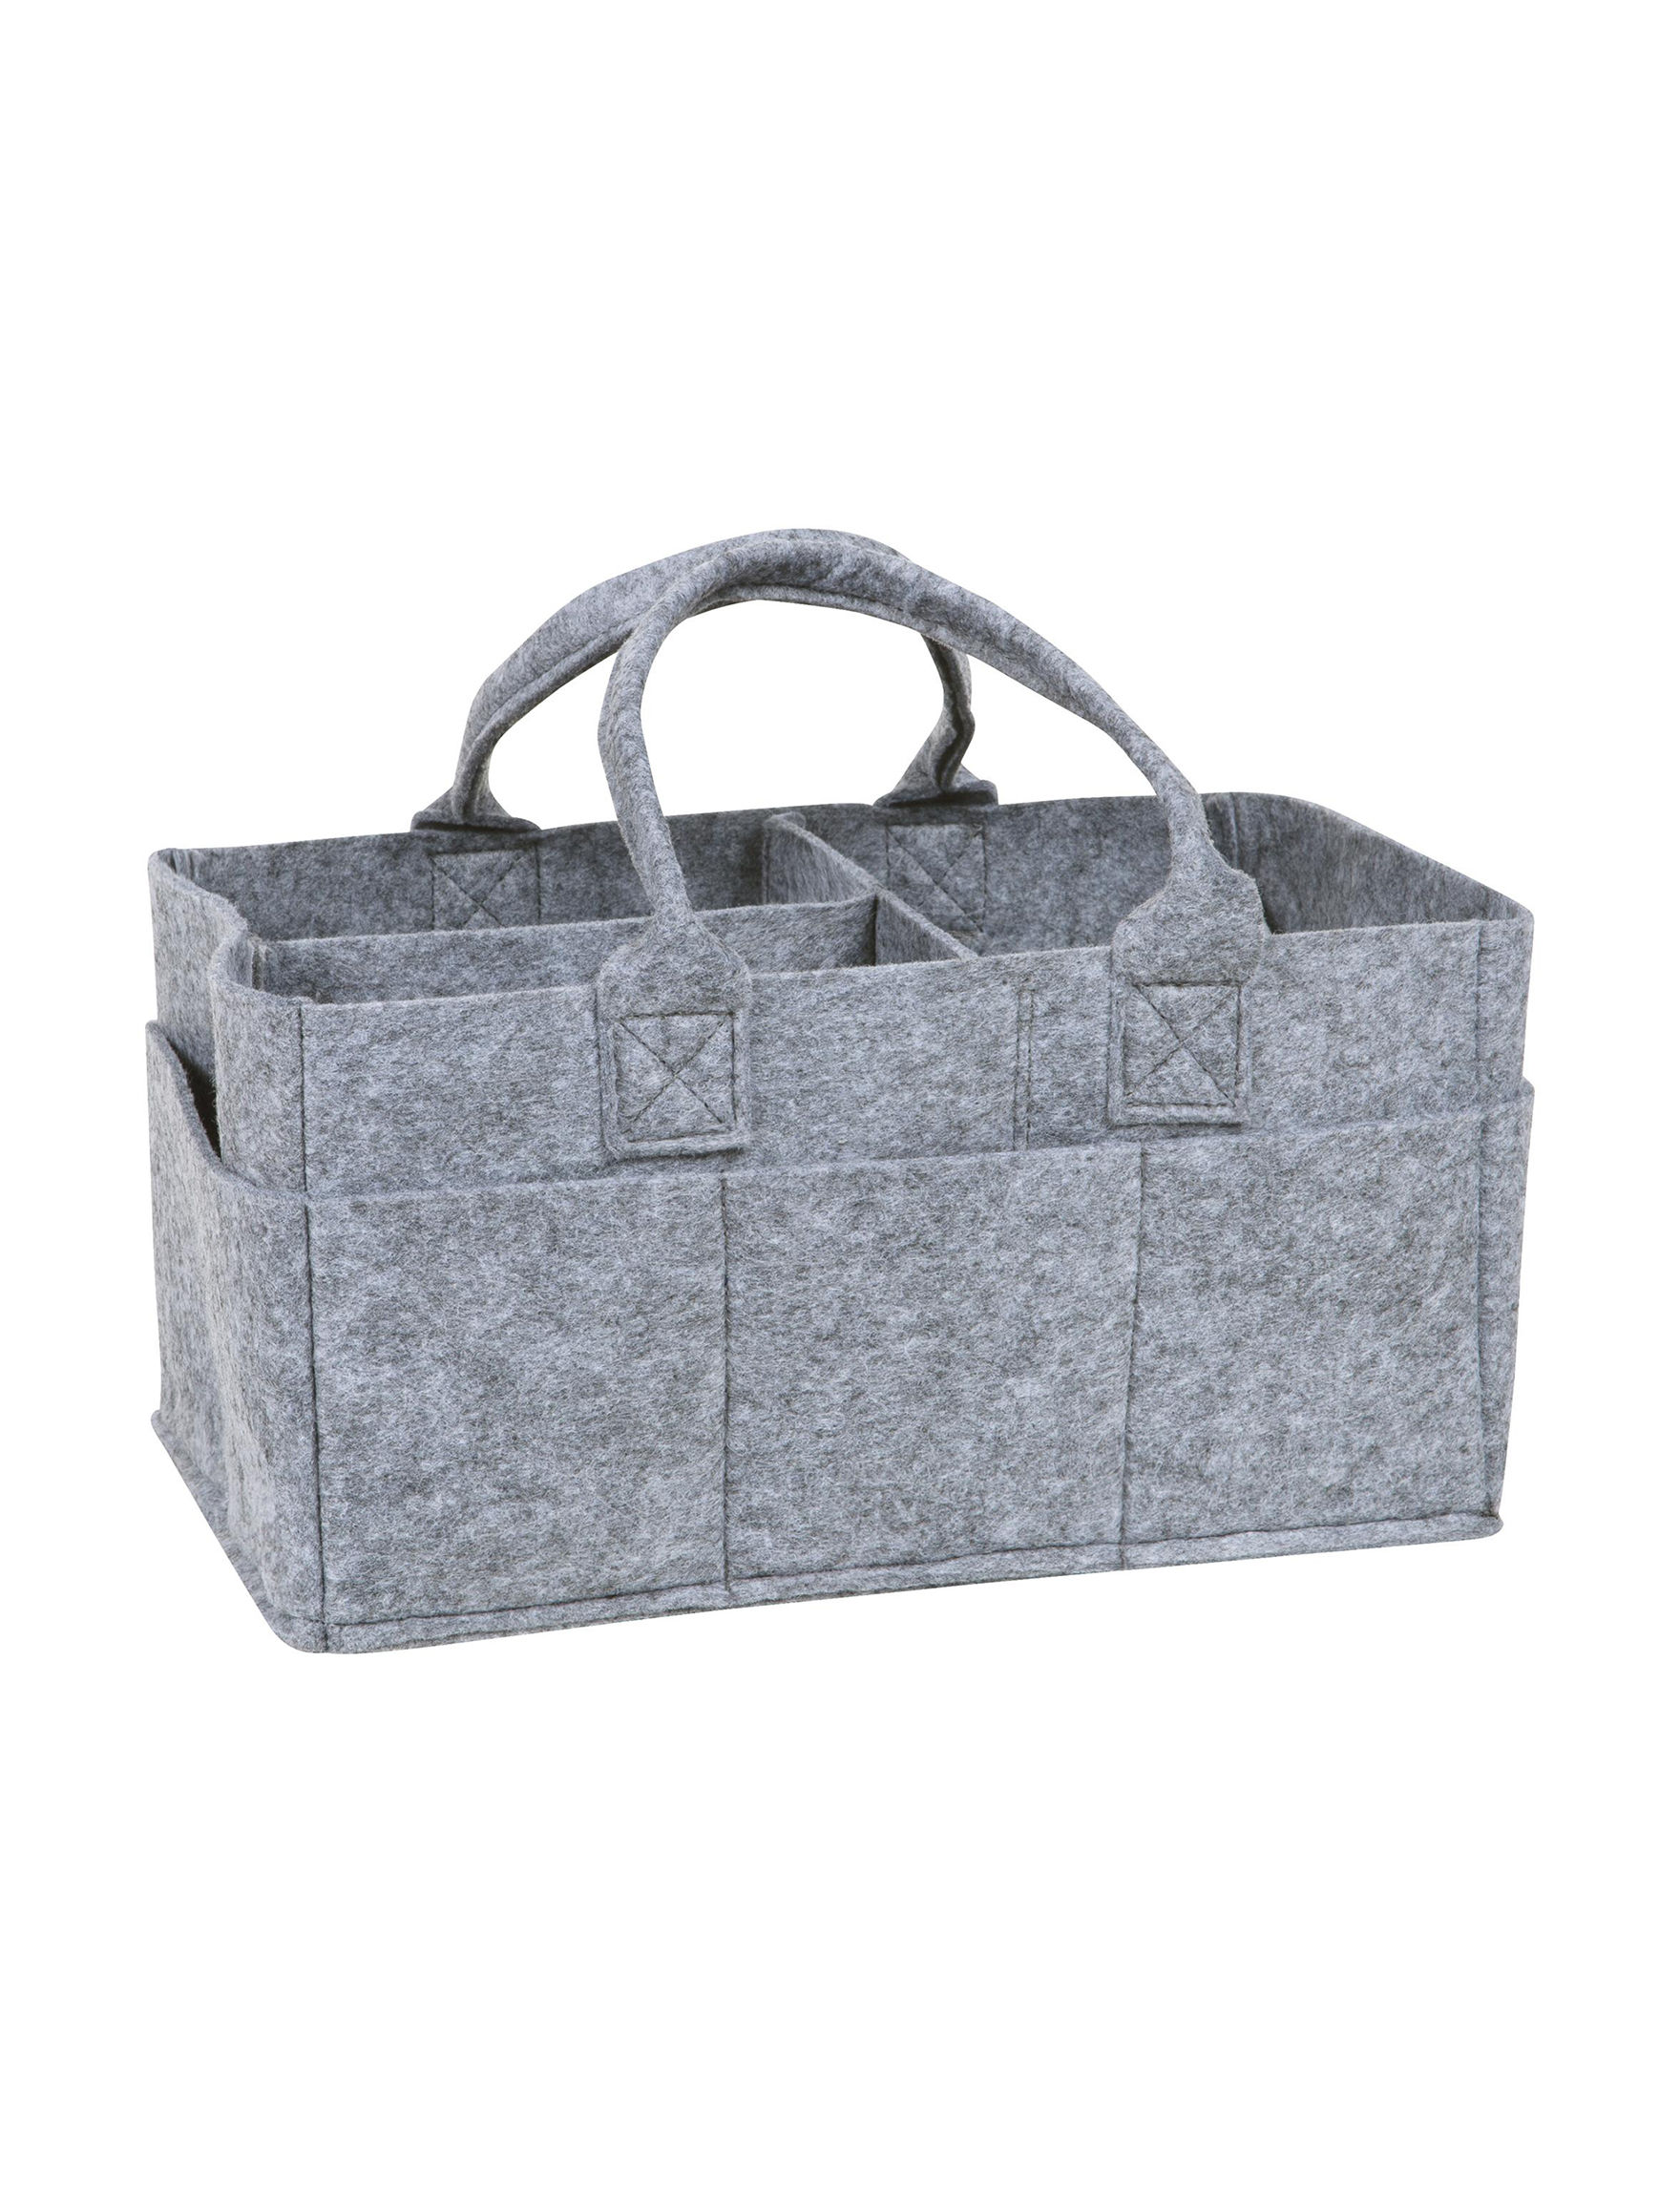 Sammy and Lou Grey Carriers & Totes Storage & Organization